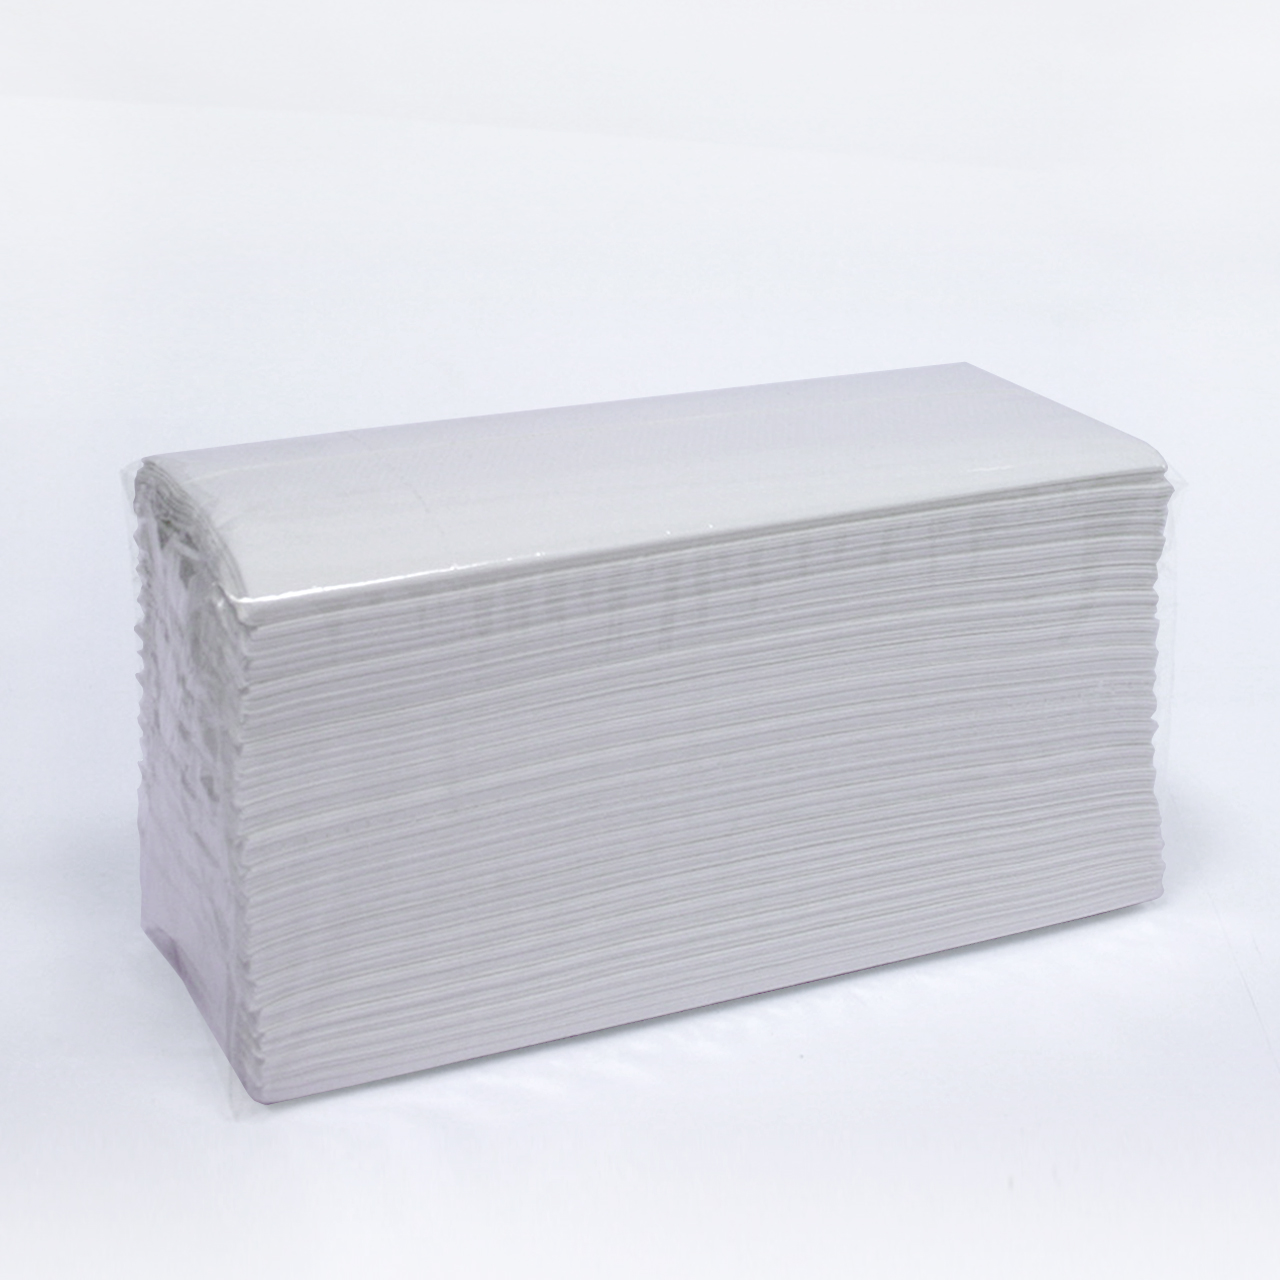 C Fold Hand Towels 2 ply White